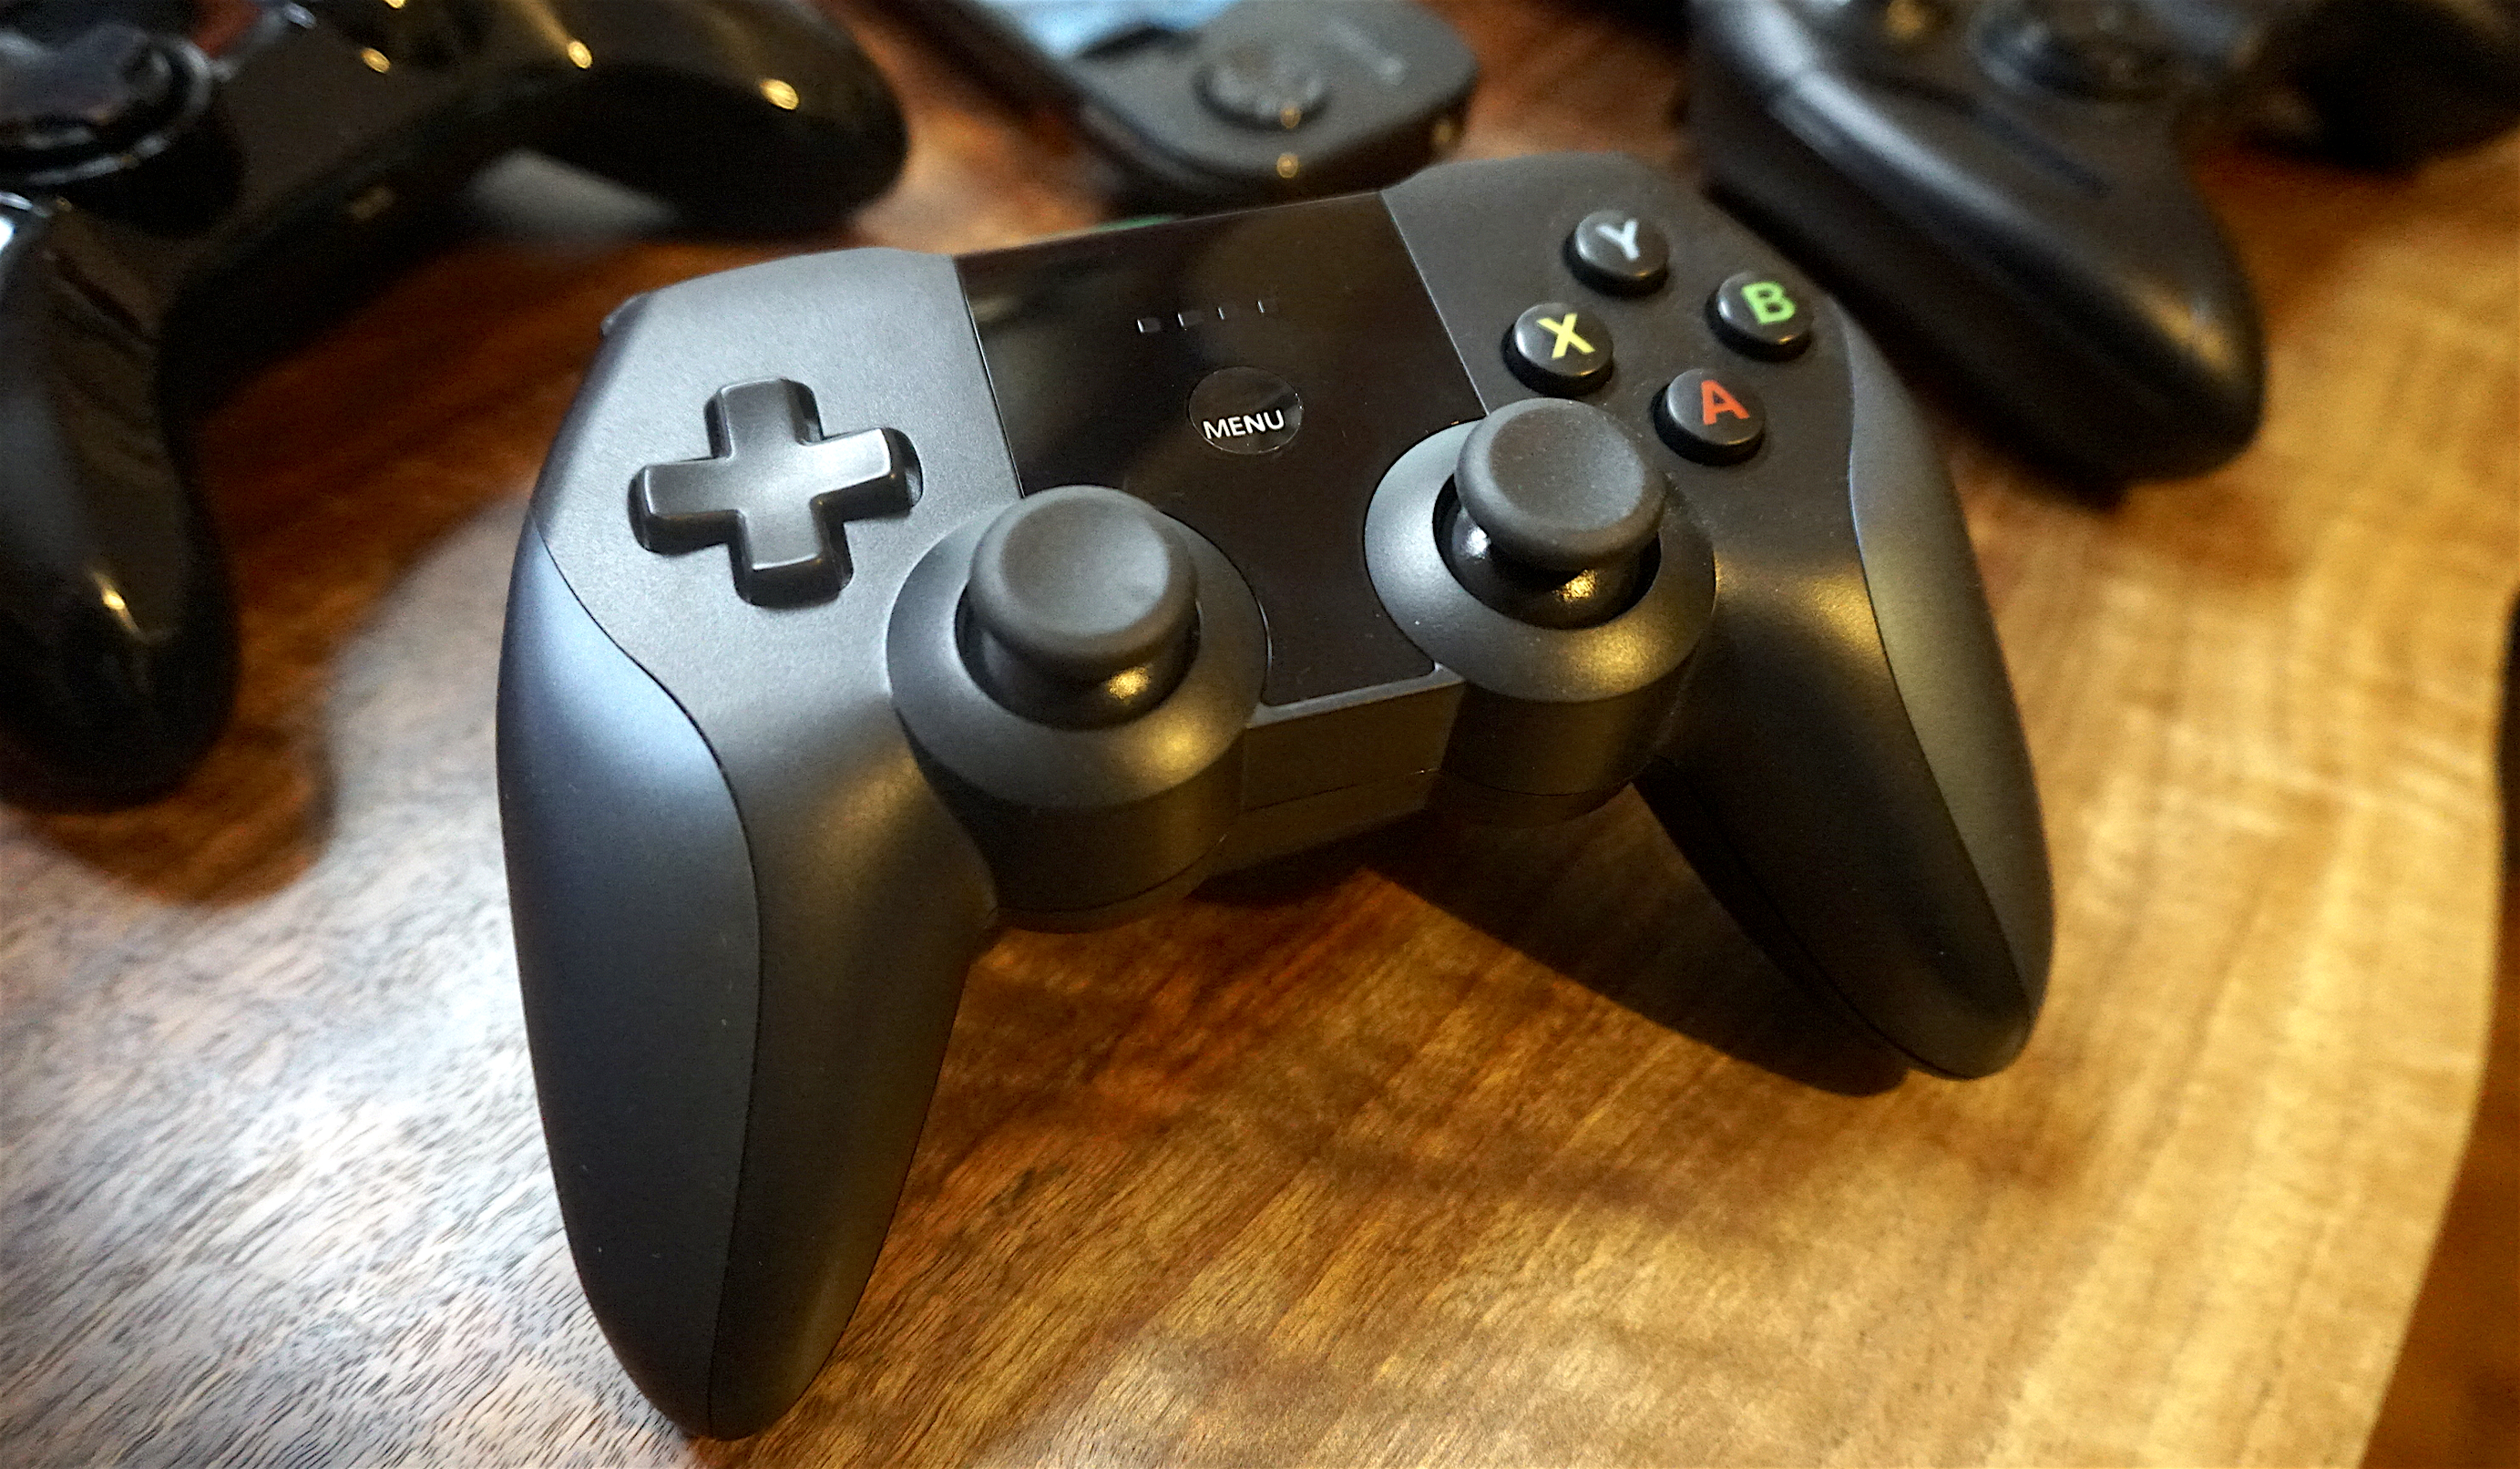 The best made-for-iPhone, iPad, & Apple TV game controllers - 9to5Mac